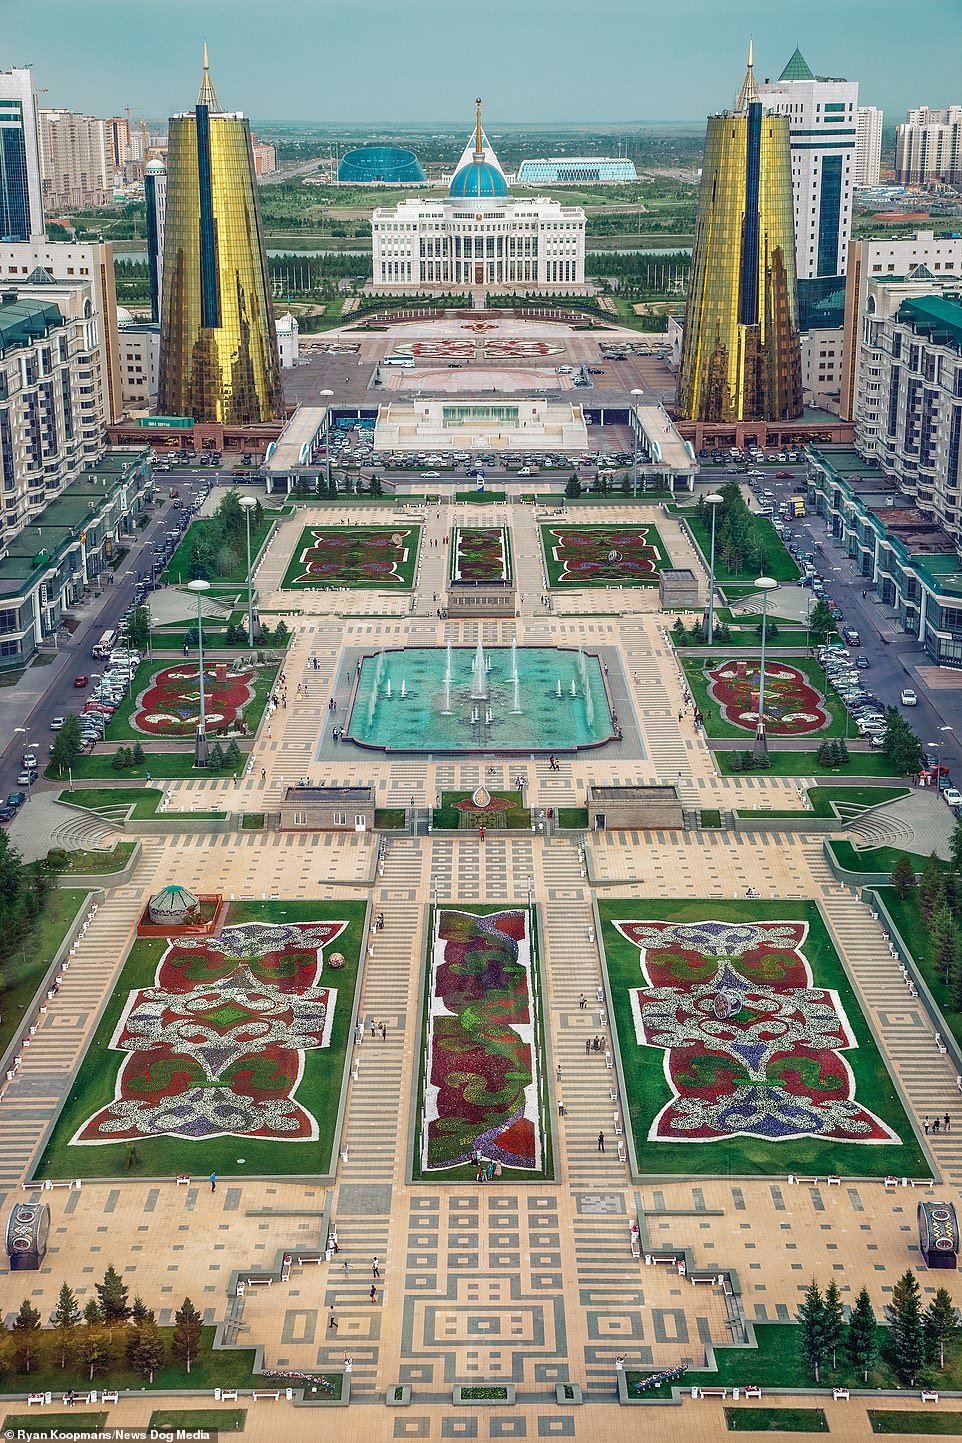 The capital city of Kazakhstan, previously called Astana, was recently renamed Nur-Sultan in honor of former president Nursultan Nazarbayev, June 2011